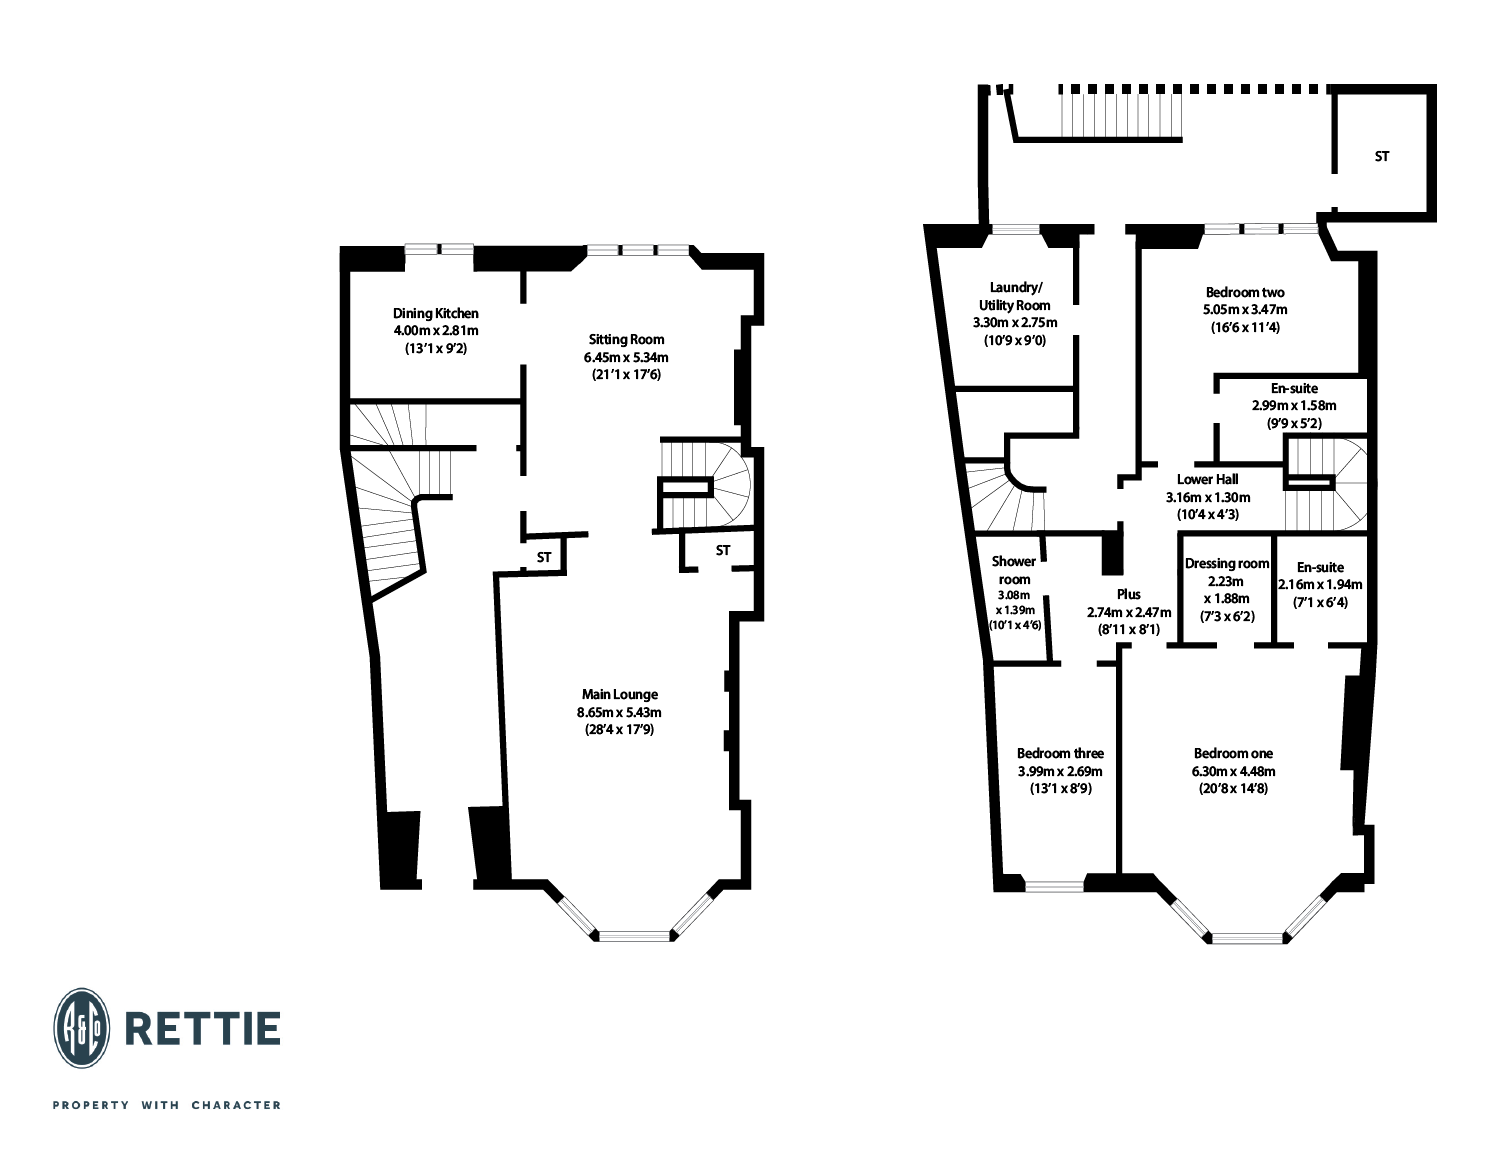 Floorplans for Athole Gardens, Dowanhill, Glasgow, G12